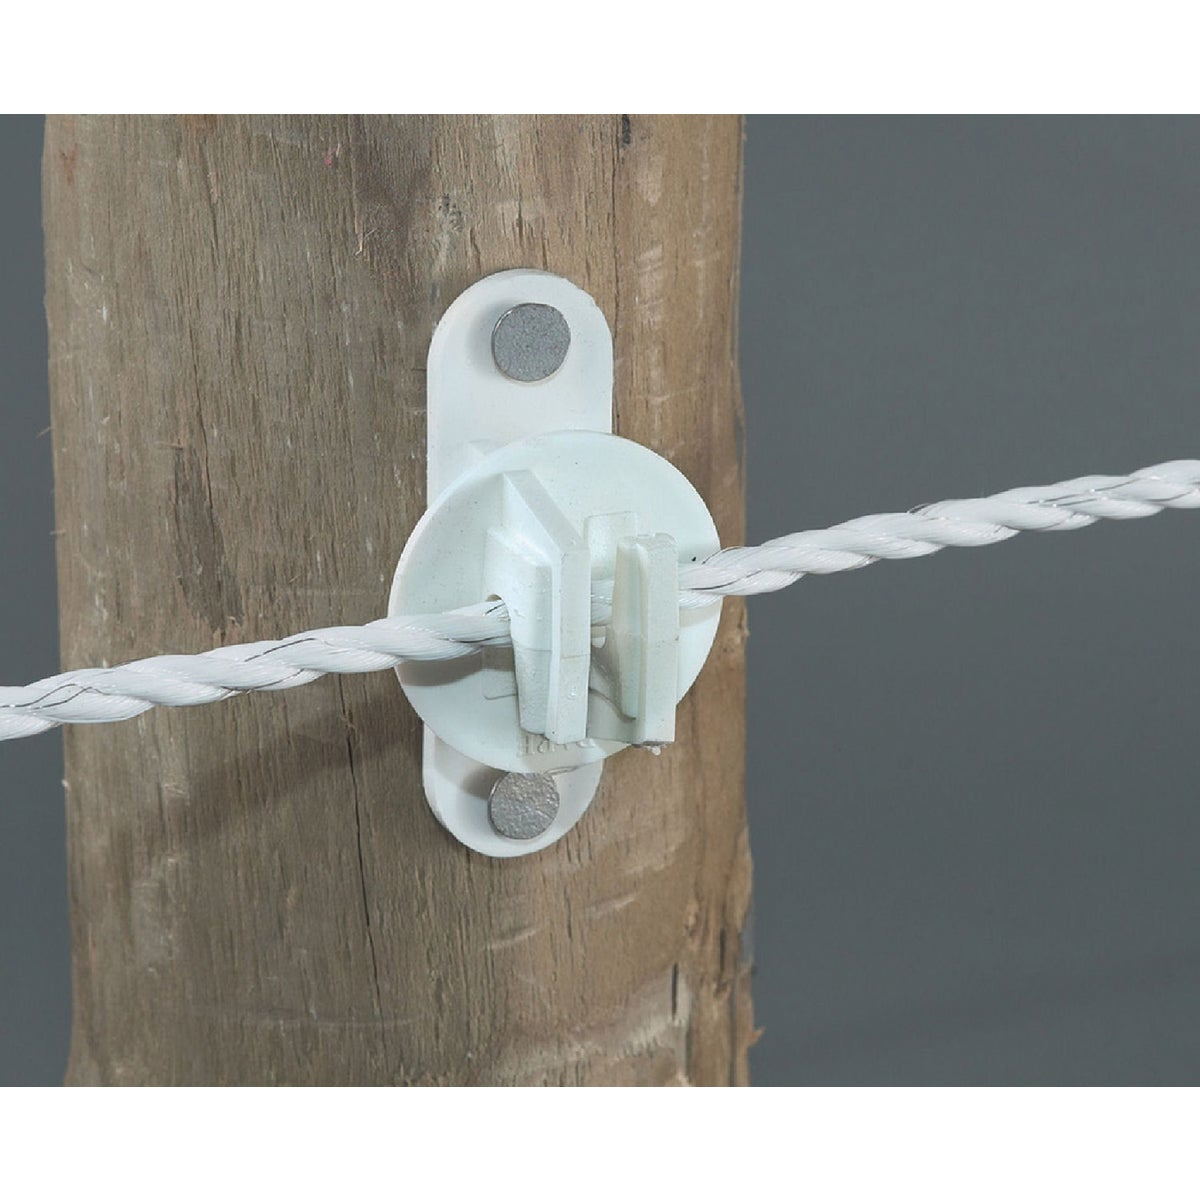 25PC WOOD POST INSULATOR - SNUG-HTW by Dare Products Inc